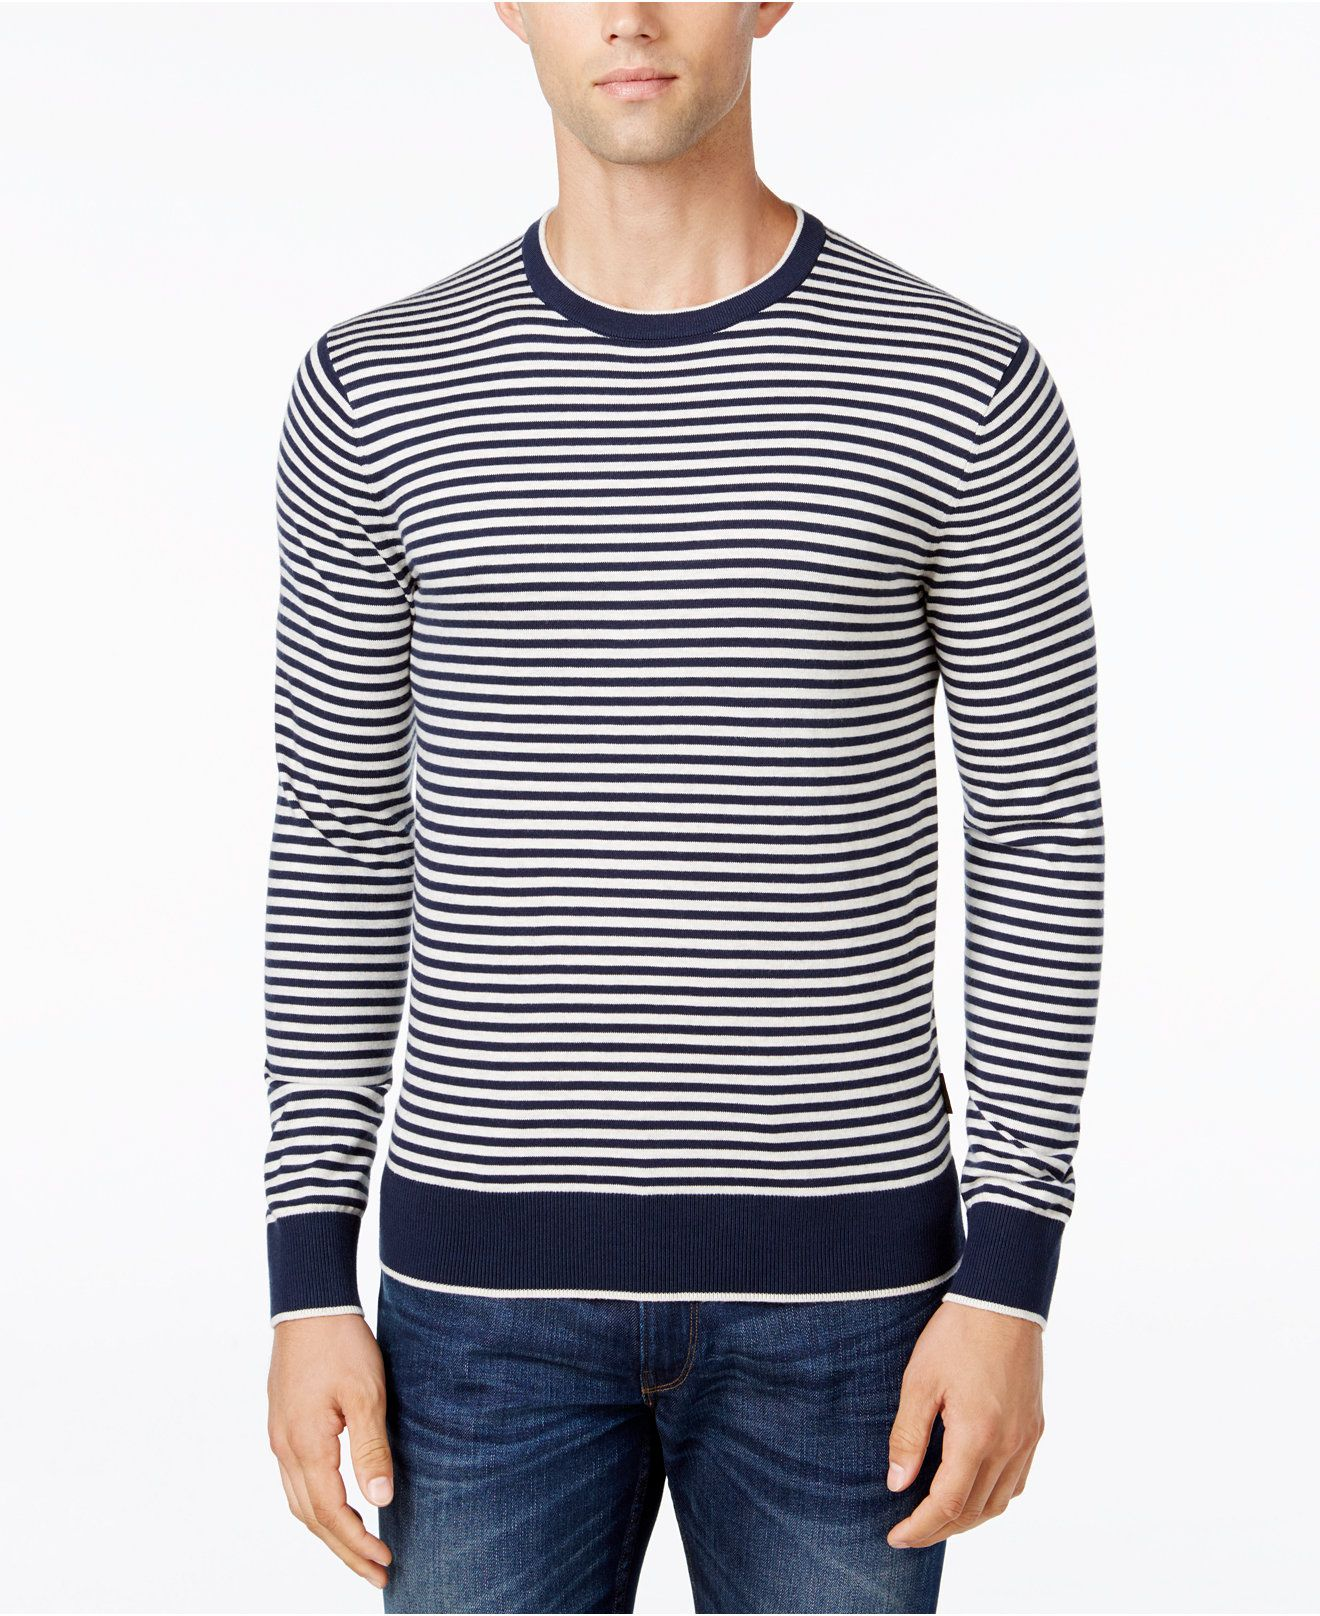 Michael Kors Men's Feeder Striped Crew-Neck Sweater - Sweaters ...